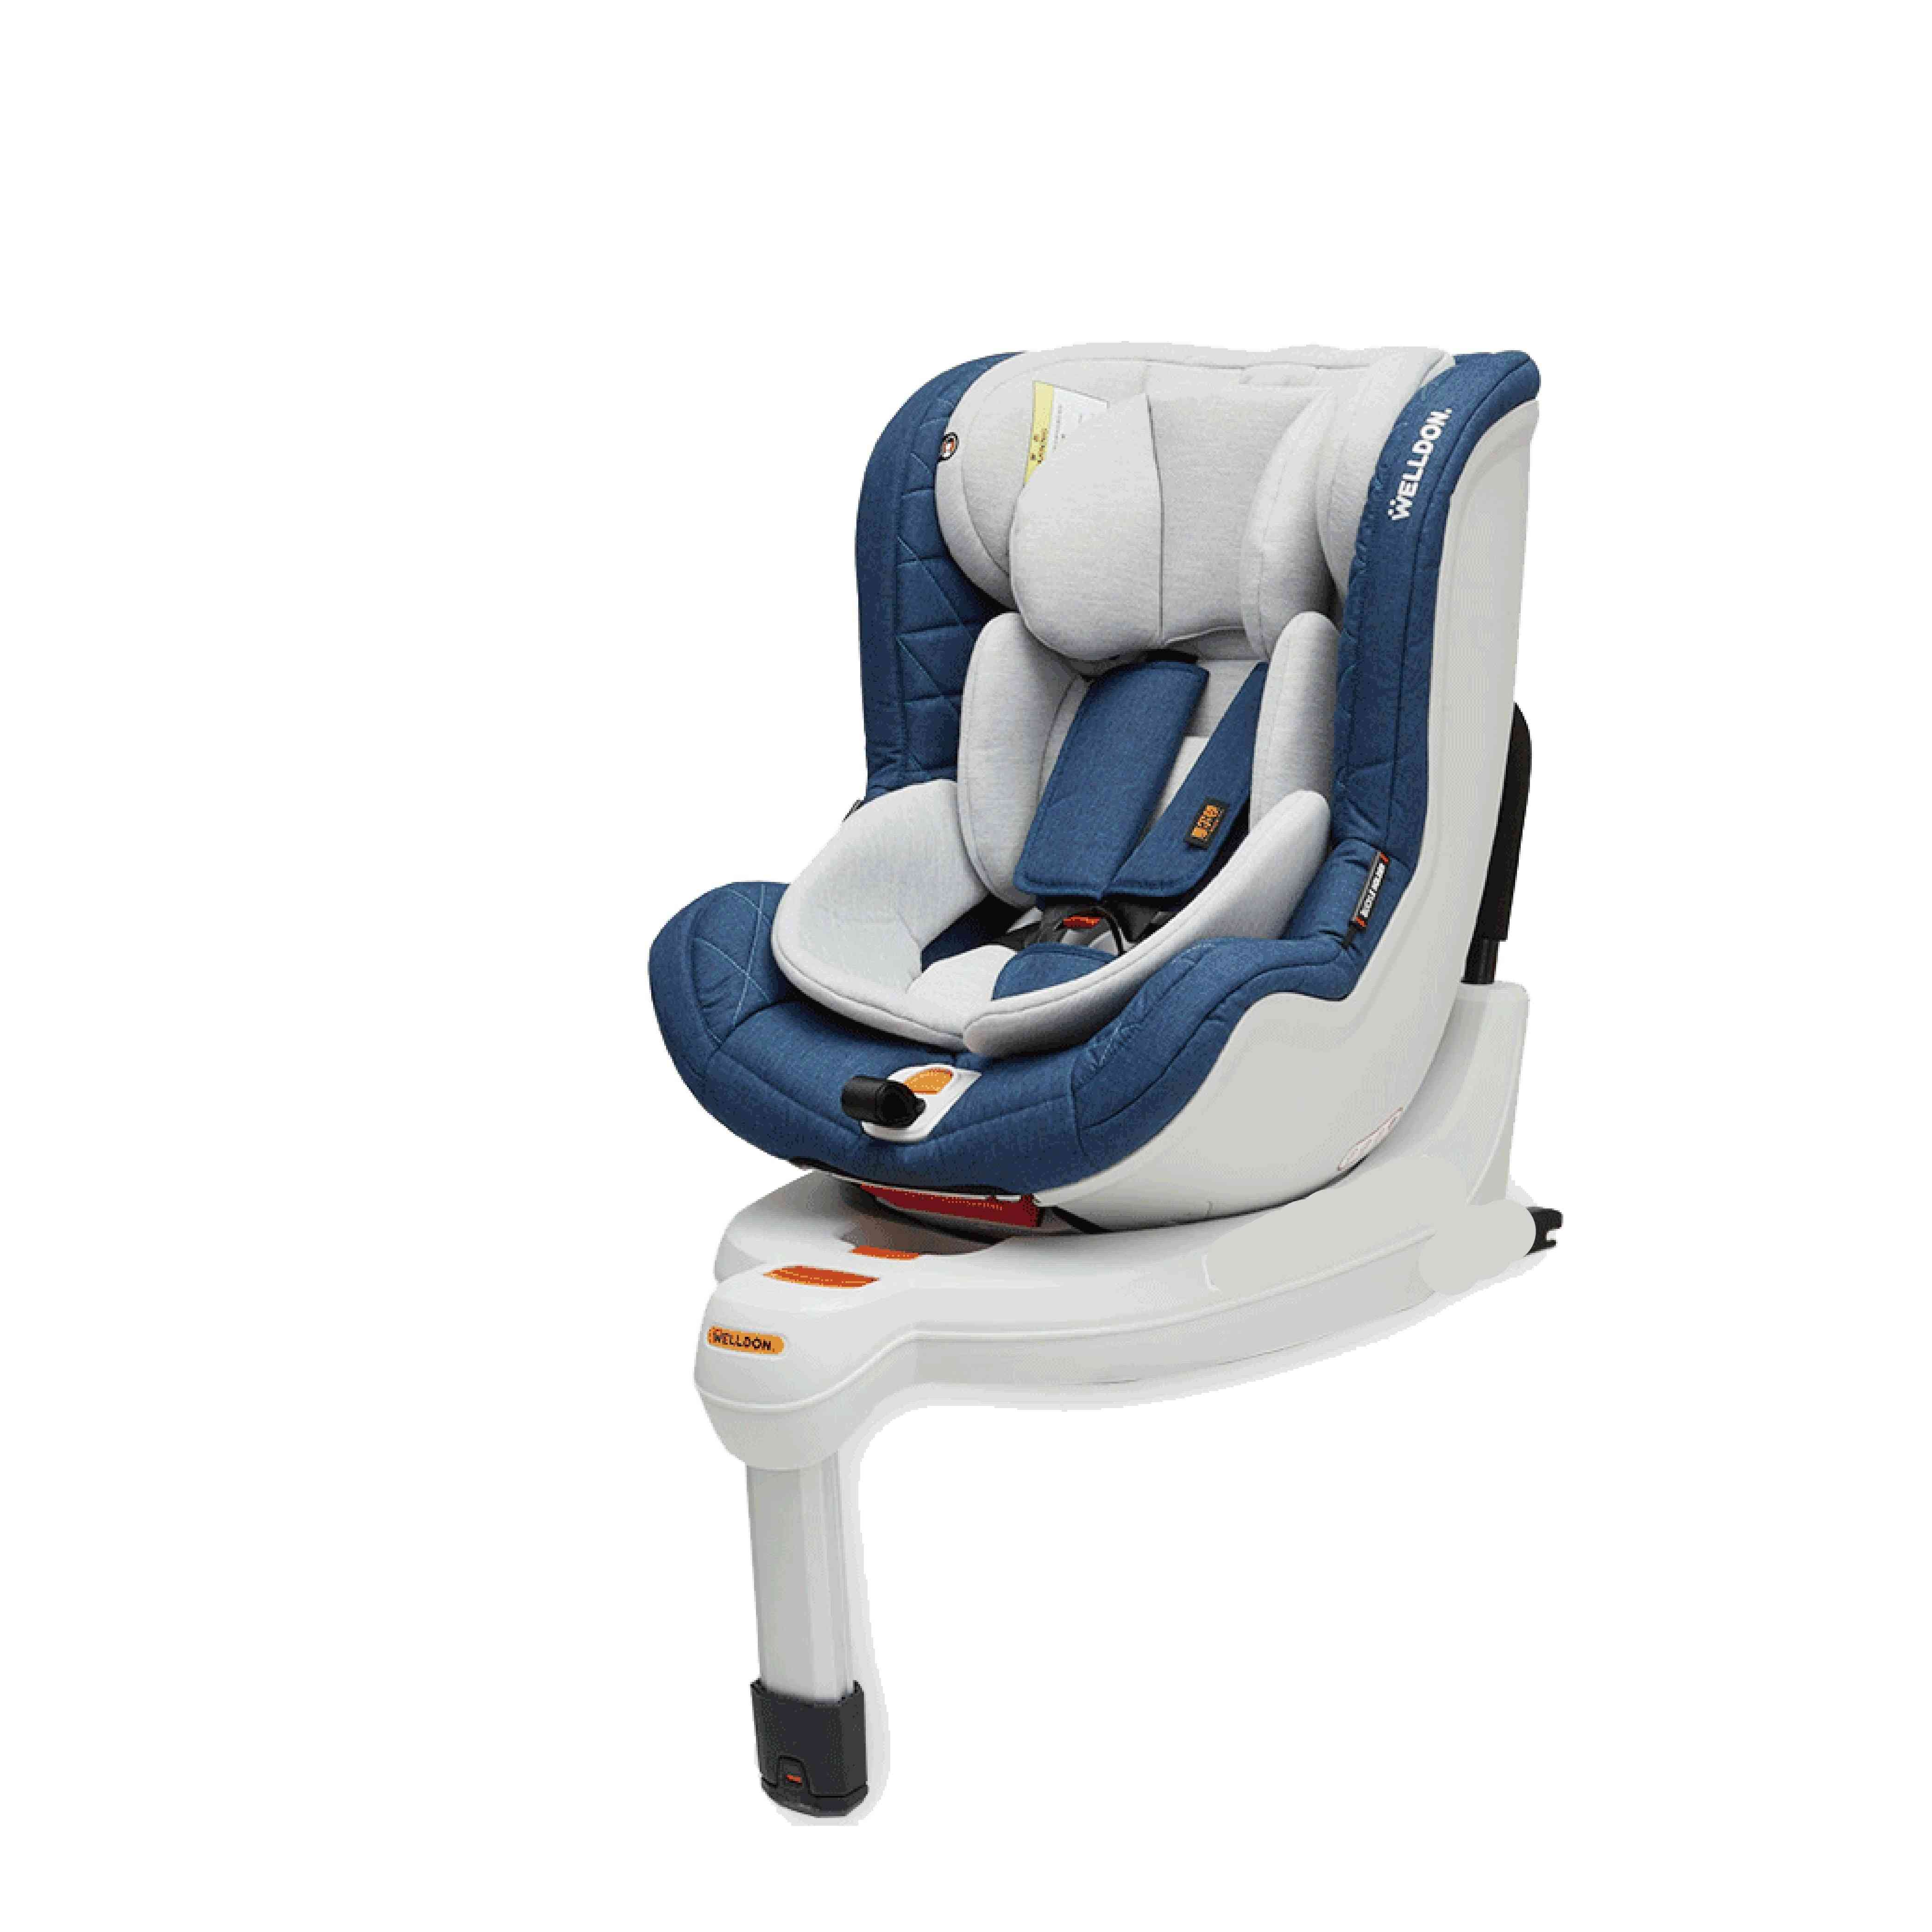 Welldon Child Car Safety Seats, Baby Car Safety Seat Head Protection